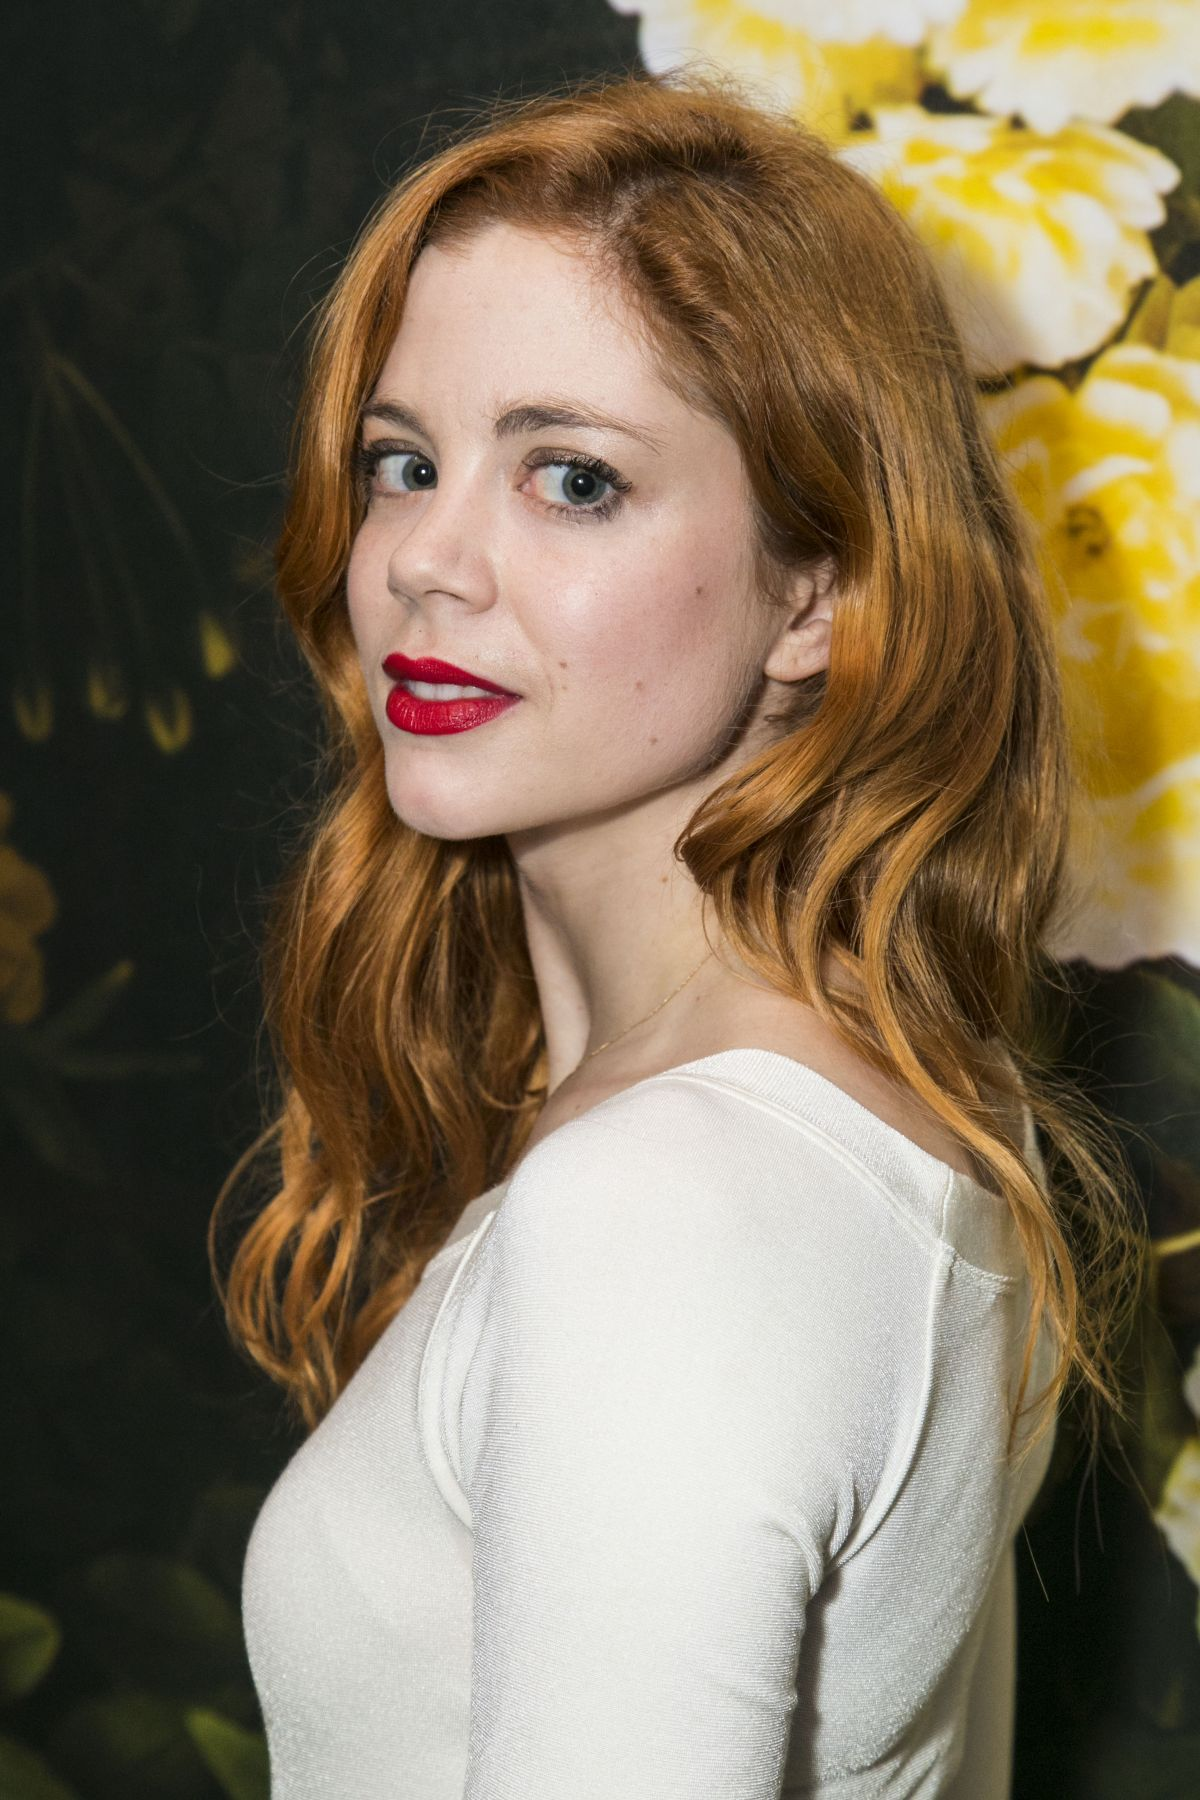 Pic Charlotte Hope naked (53 photos), Sexy, Leaked, Feet, cleavage 2019